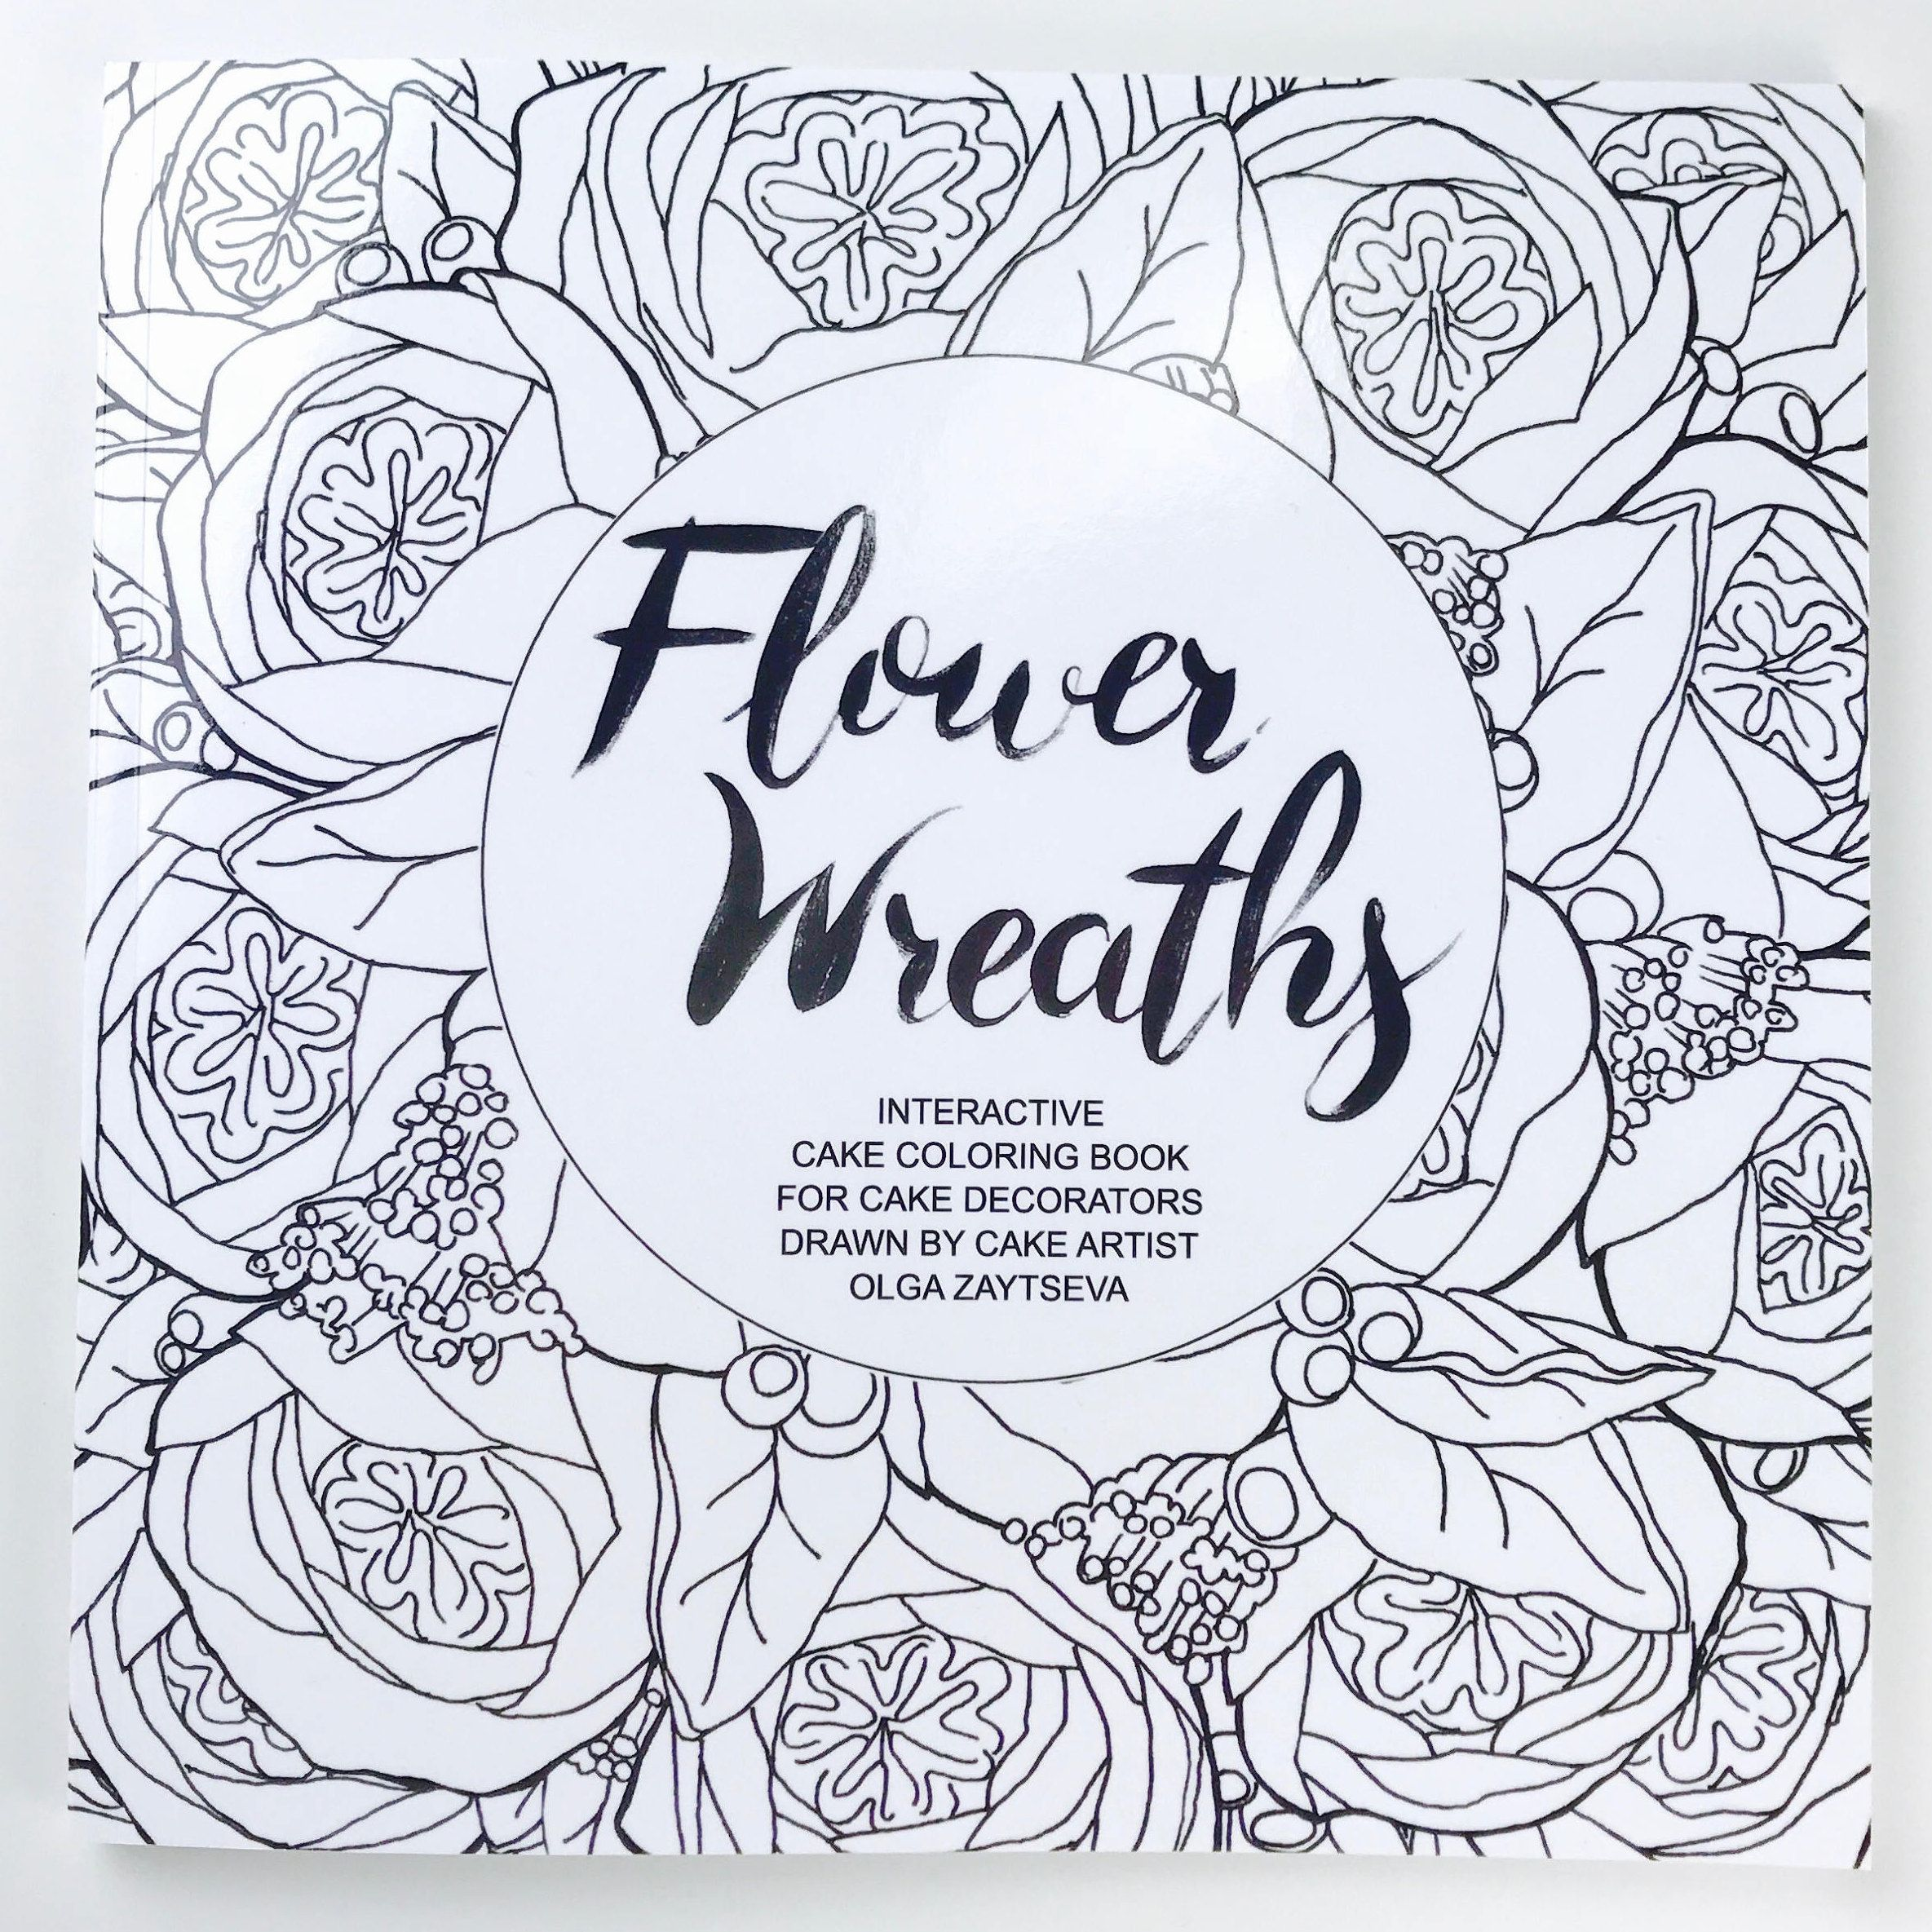 Adult Coloring Book | Flower wreaths interactive cake coloring book ...